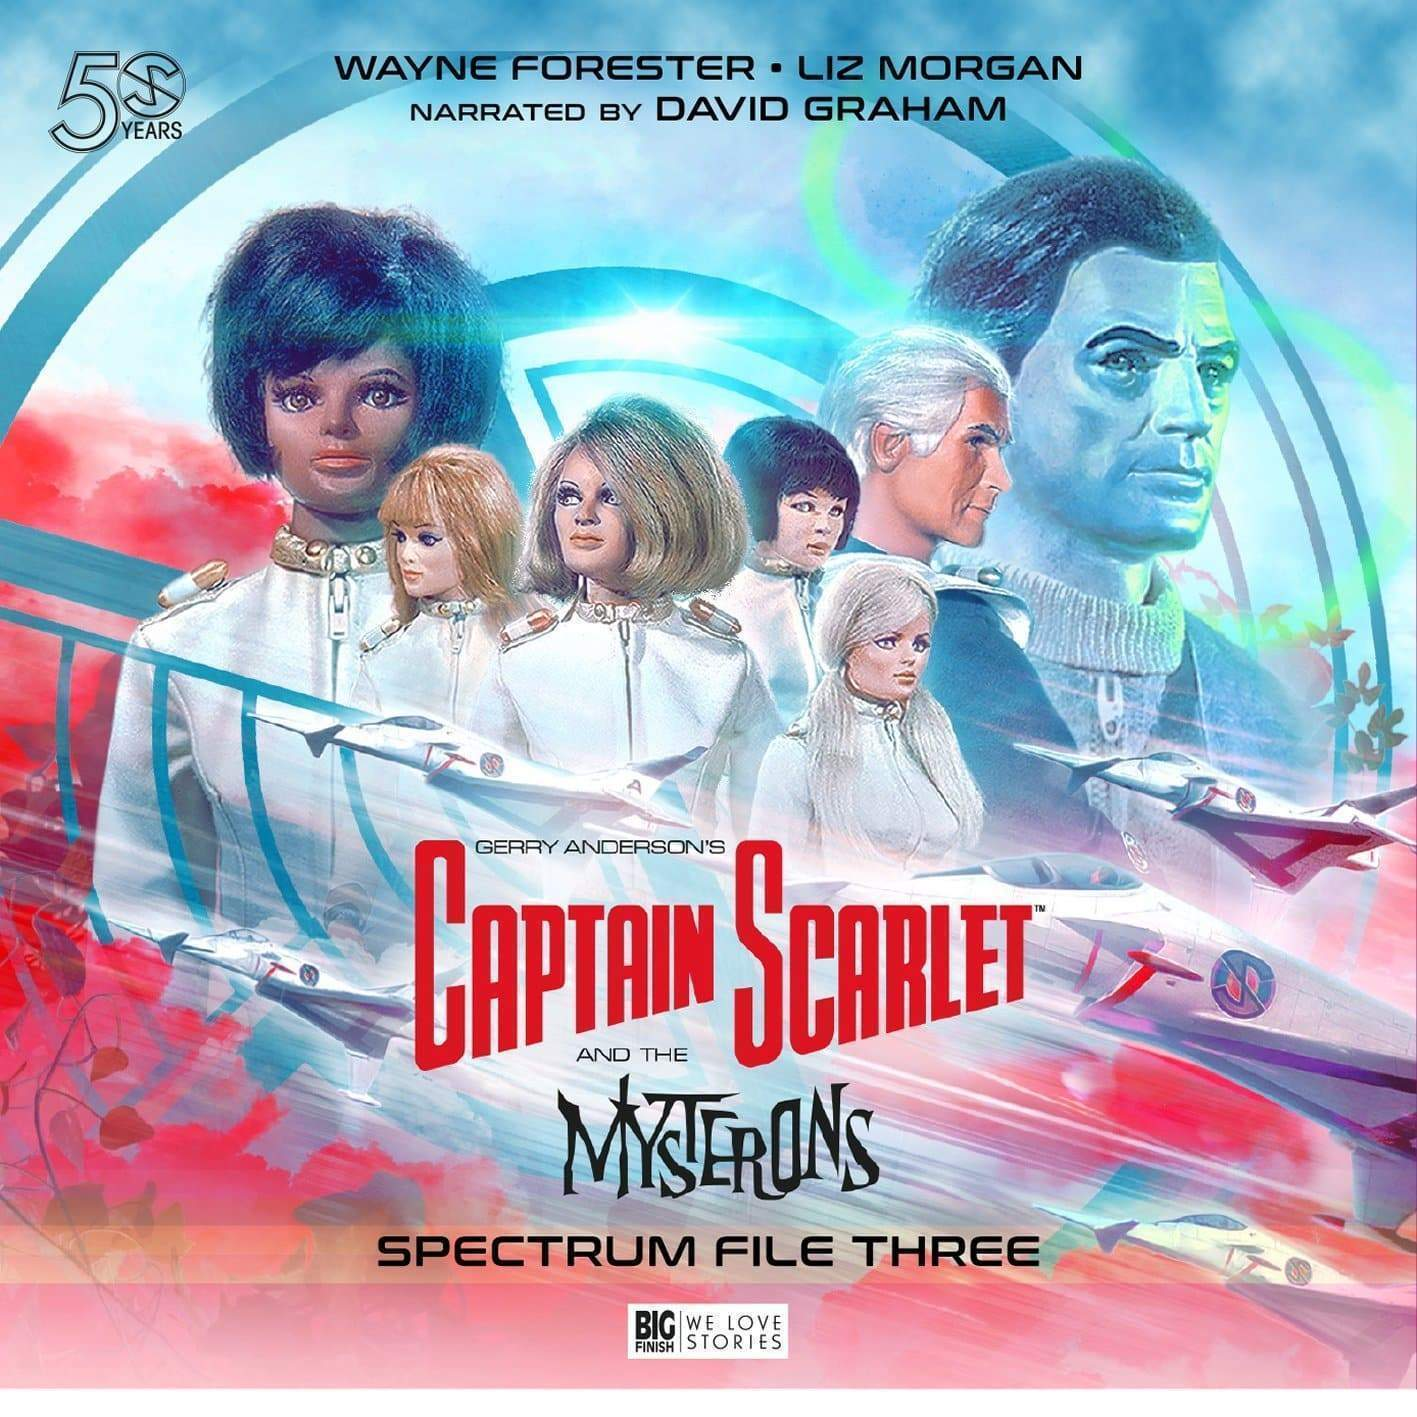 Captain Scarlet - Spectrum File 3 [DOWNLOAD] - The Gerry Anderson Store